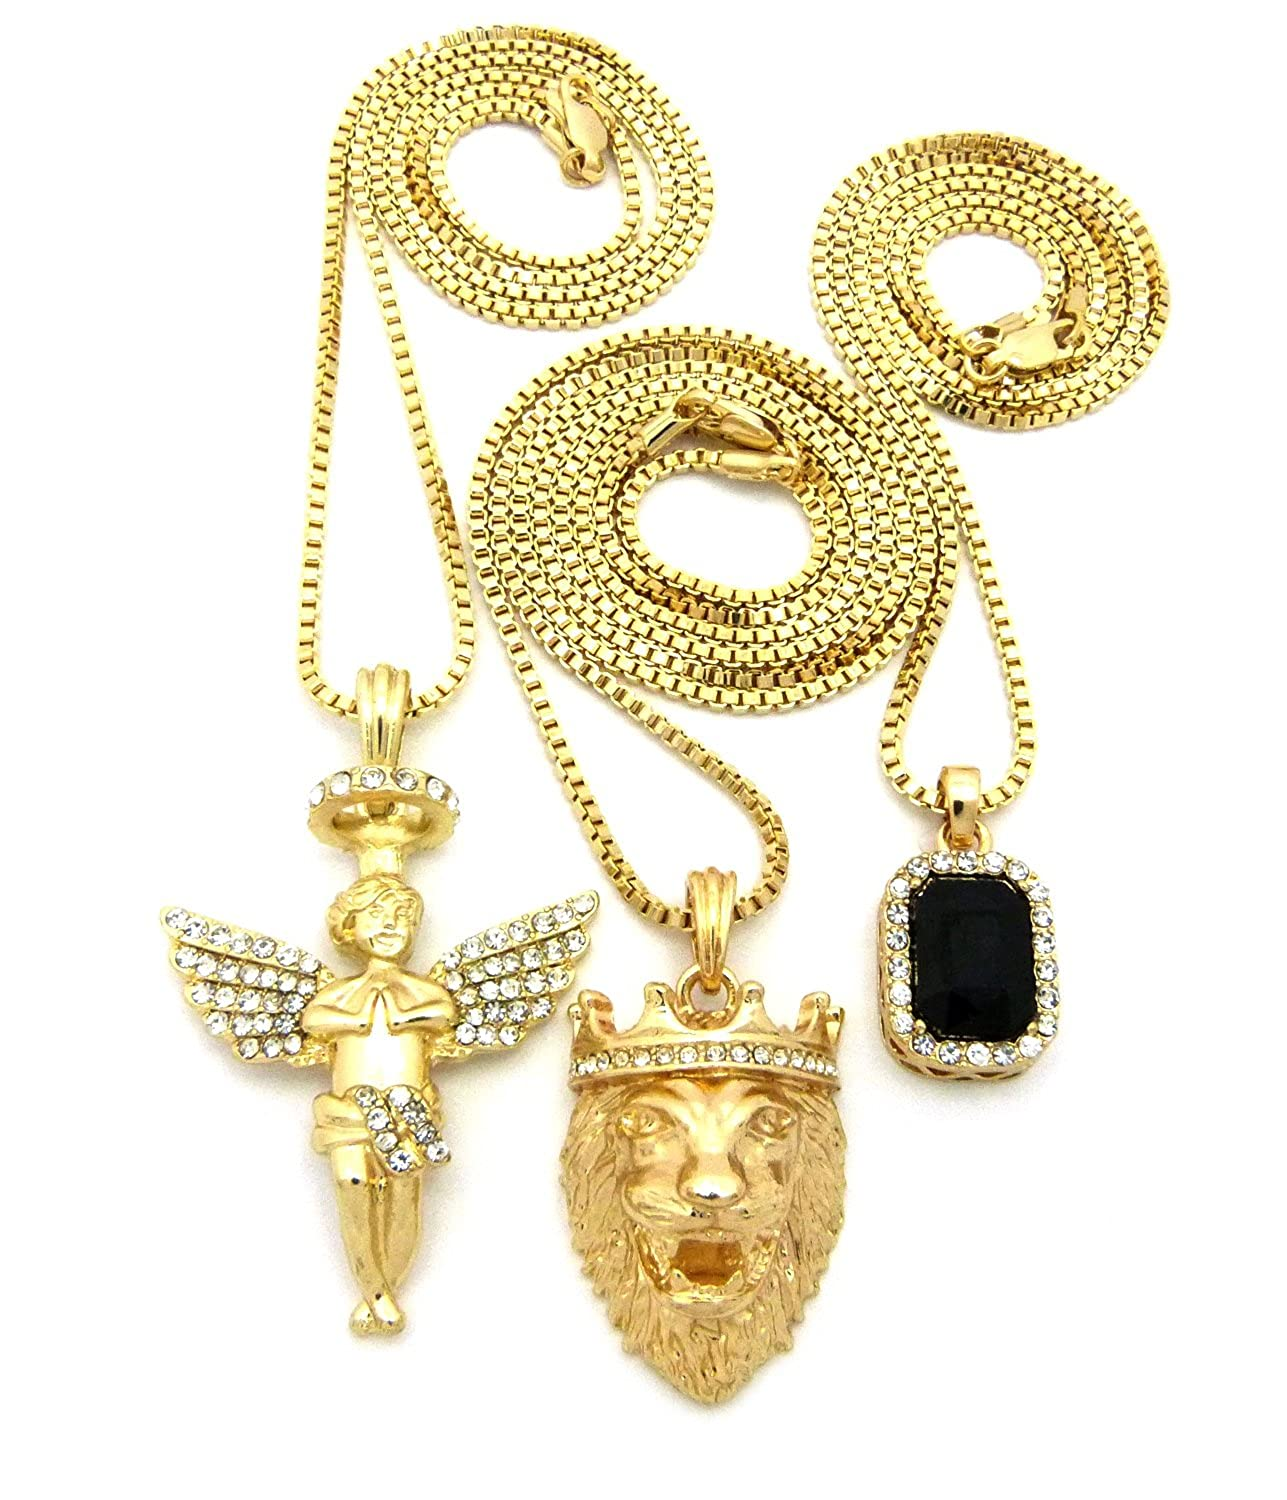 lion christie pendant christies online brothers nyr jewels necklace hammerman s